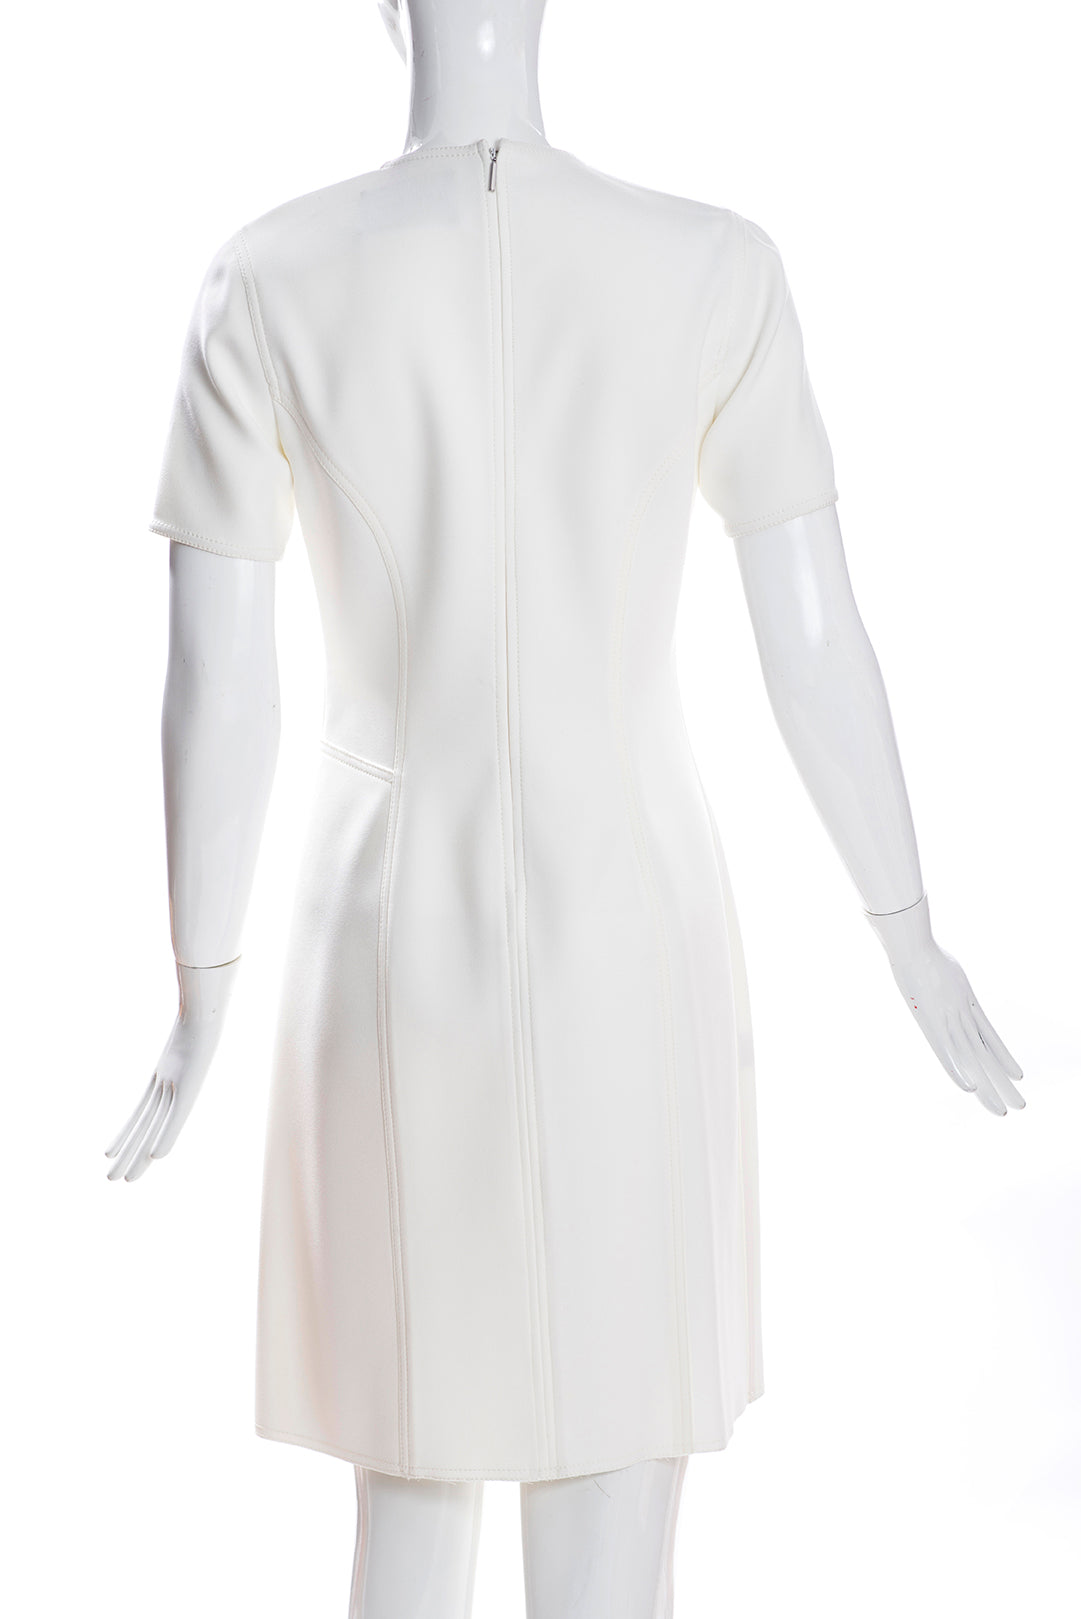 JASON WU Ivory Creme Crepe Jewel Neck Short Sleeve Mock Wrap Sheath Dress 4 GUC